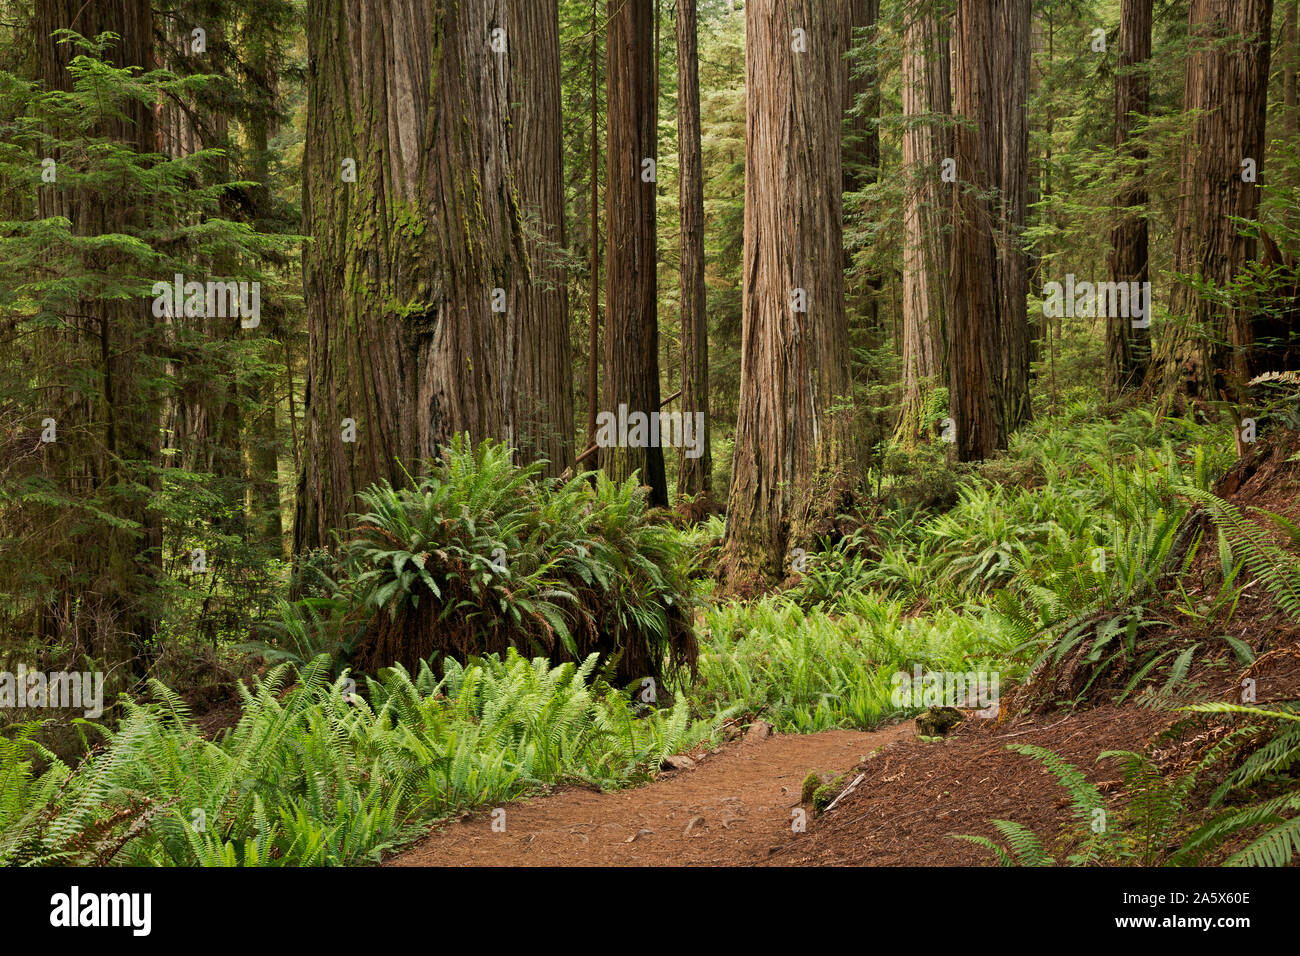 CA03755-00...CALIFORNIA - Tall trees growing along the Boy Scout Trail in Jedehiah Smith Redwoods State Park, part of the Redwoods National and State Stock Photo